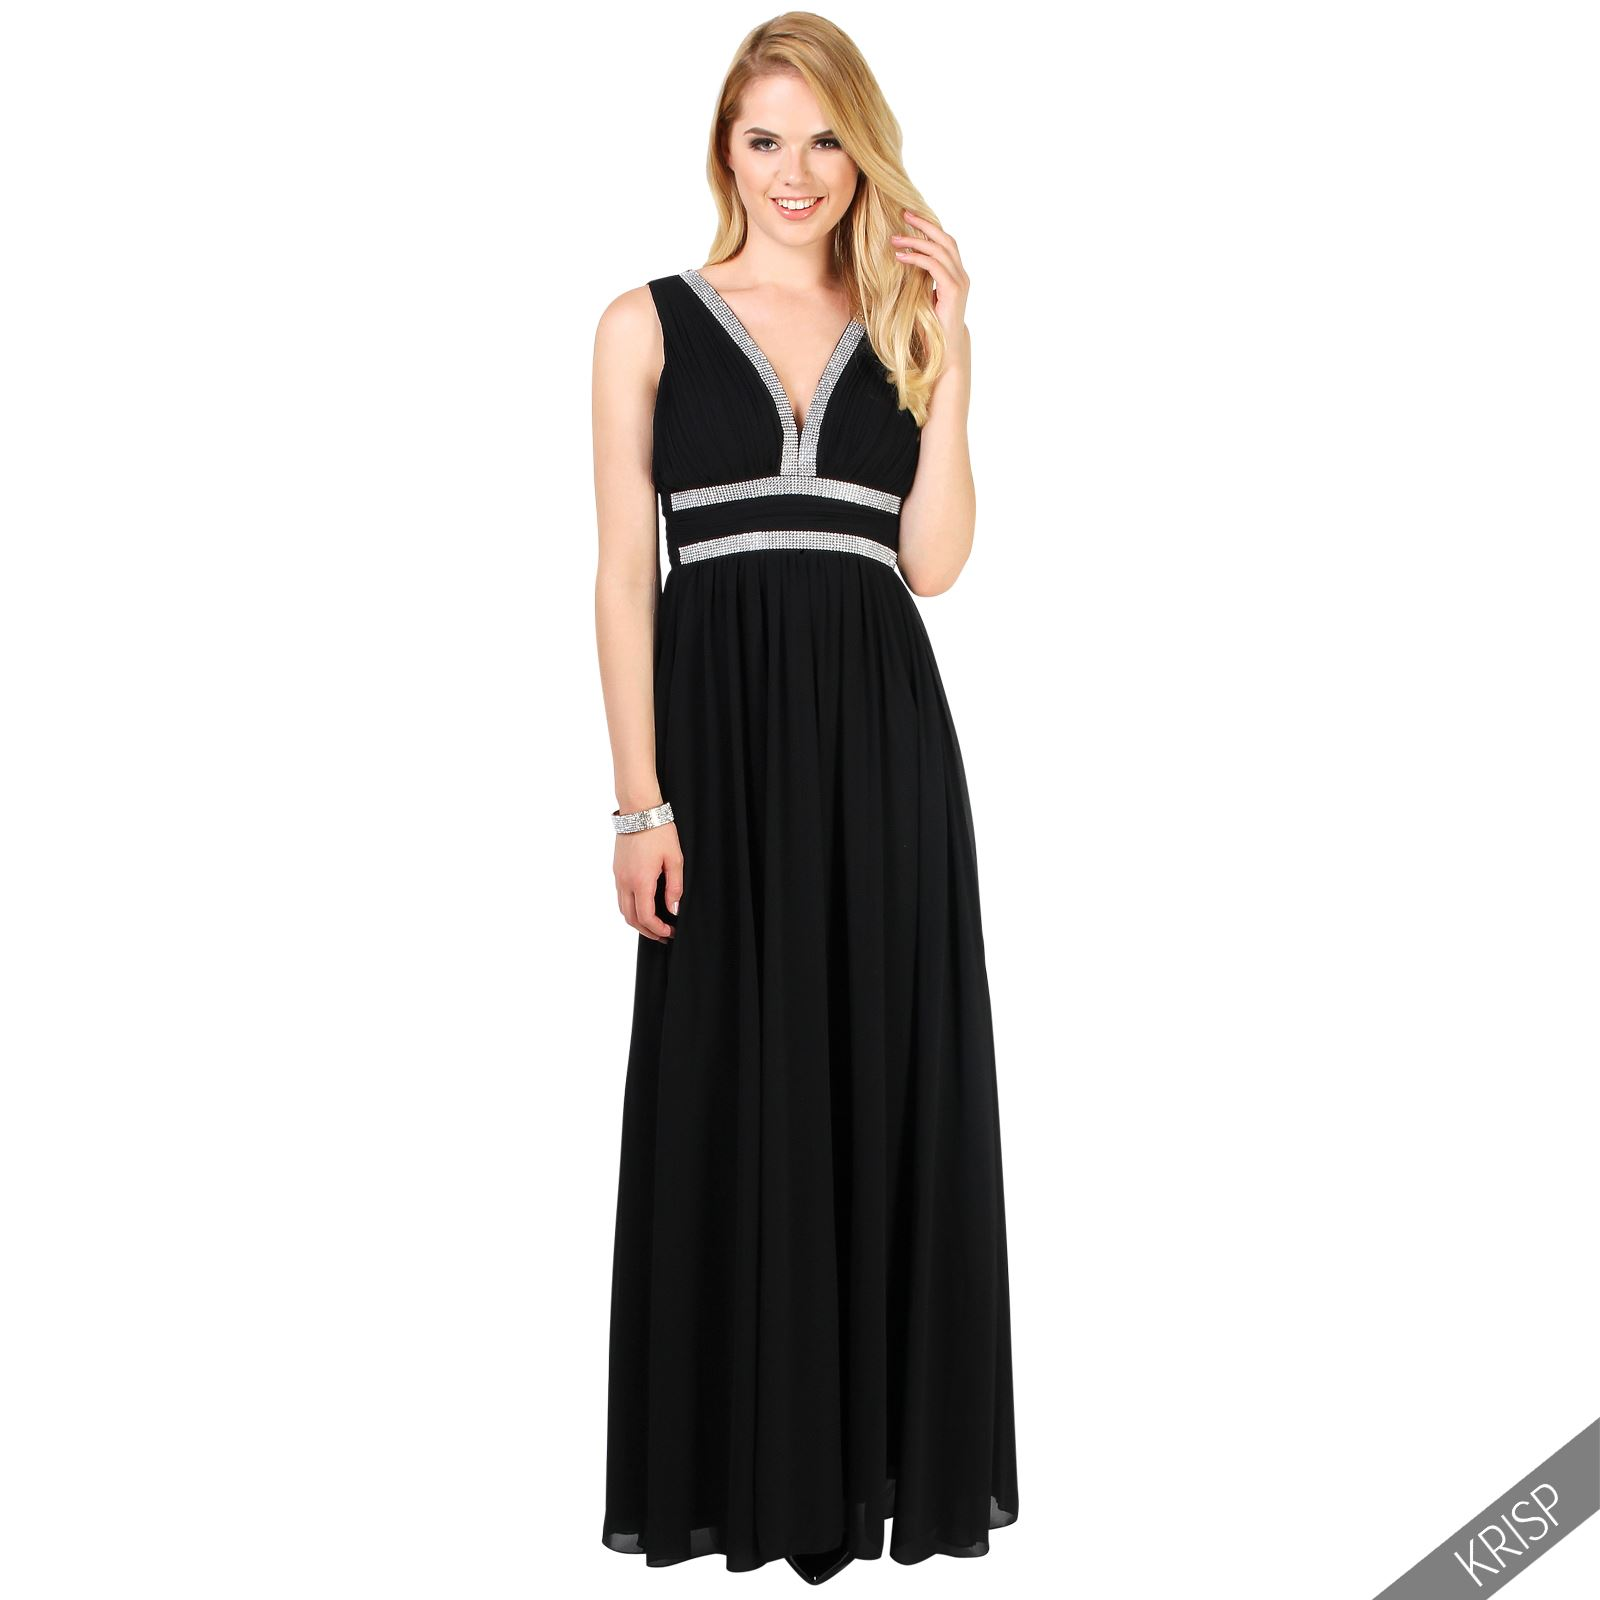 Ladies formal long prom maxi dress evening ball gown for Shoes for maxi dress wedding